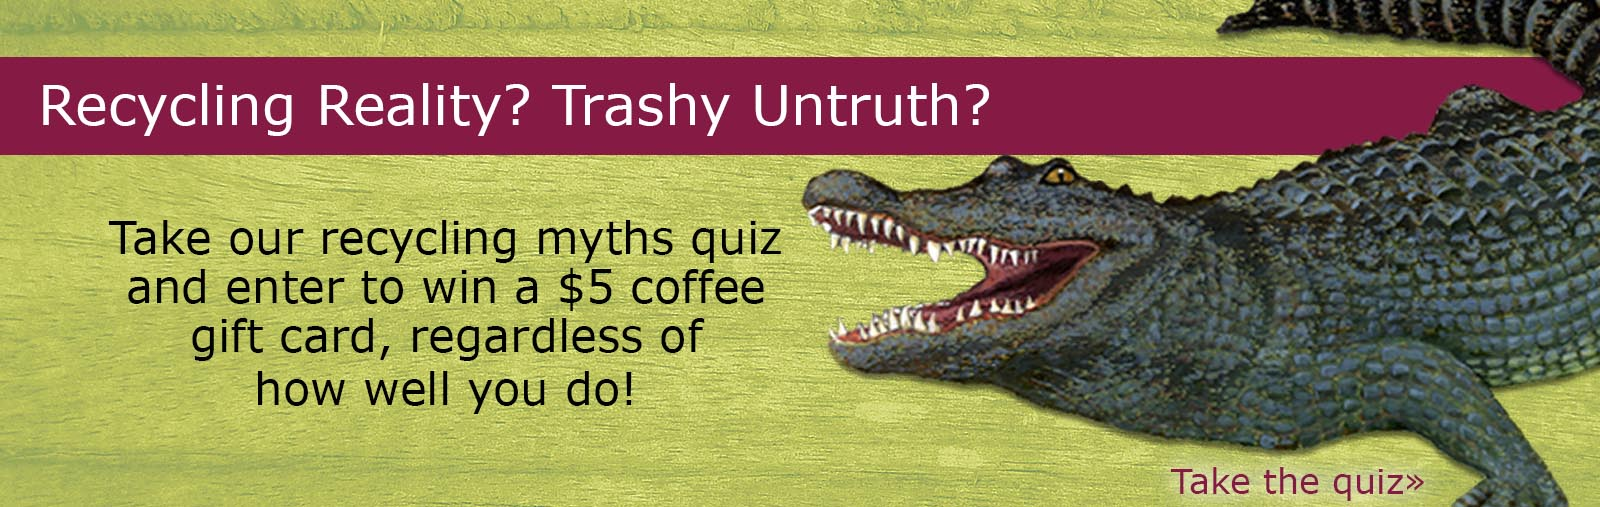 Recycling Myths Quiz